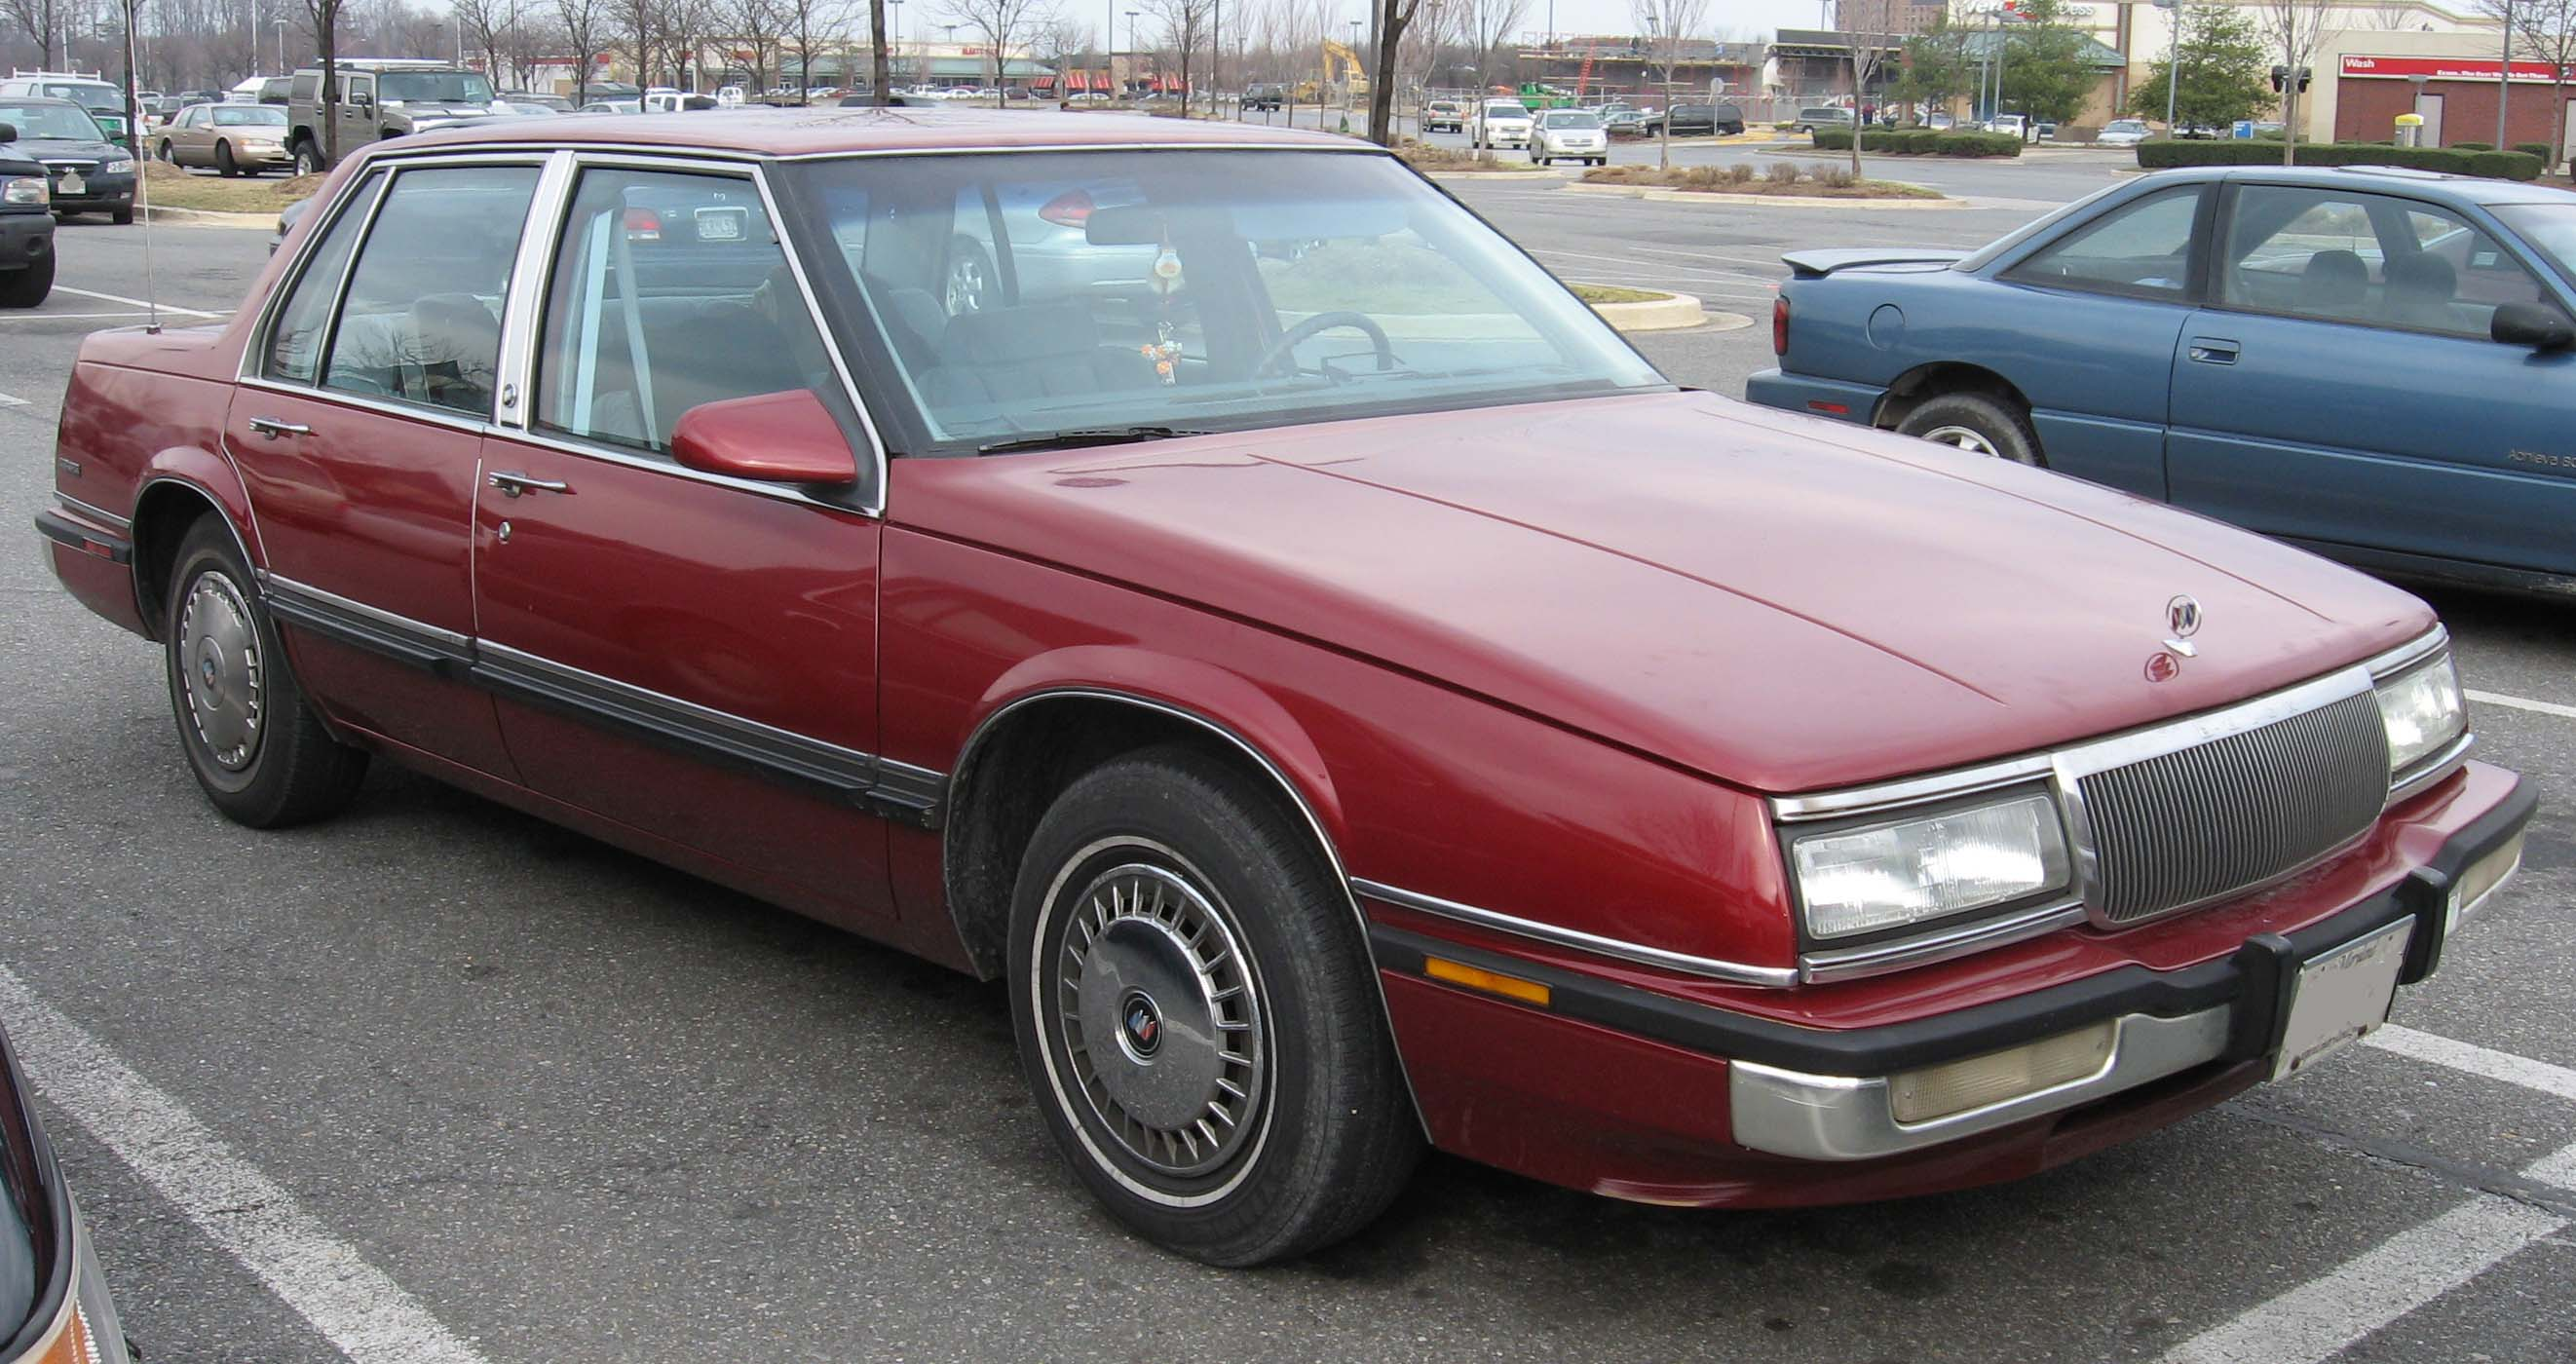 1990 Buick Century Problems 1 - Fourtitude Com Vulgalore Buick Bubbles Why So Many Still On The Road - 1990 Buick Century Problems 1